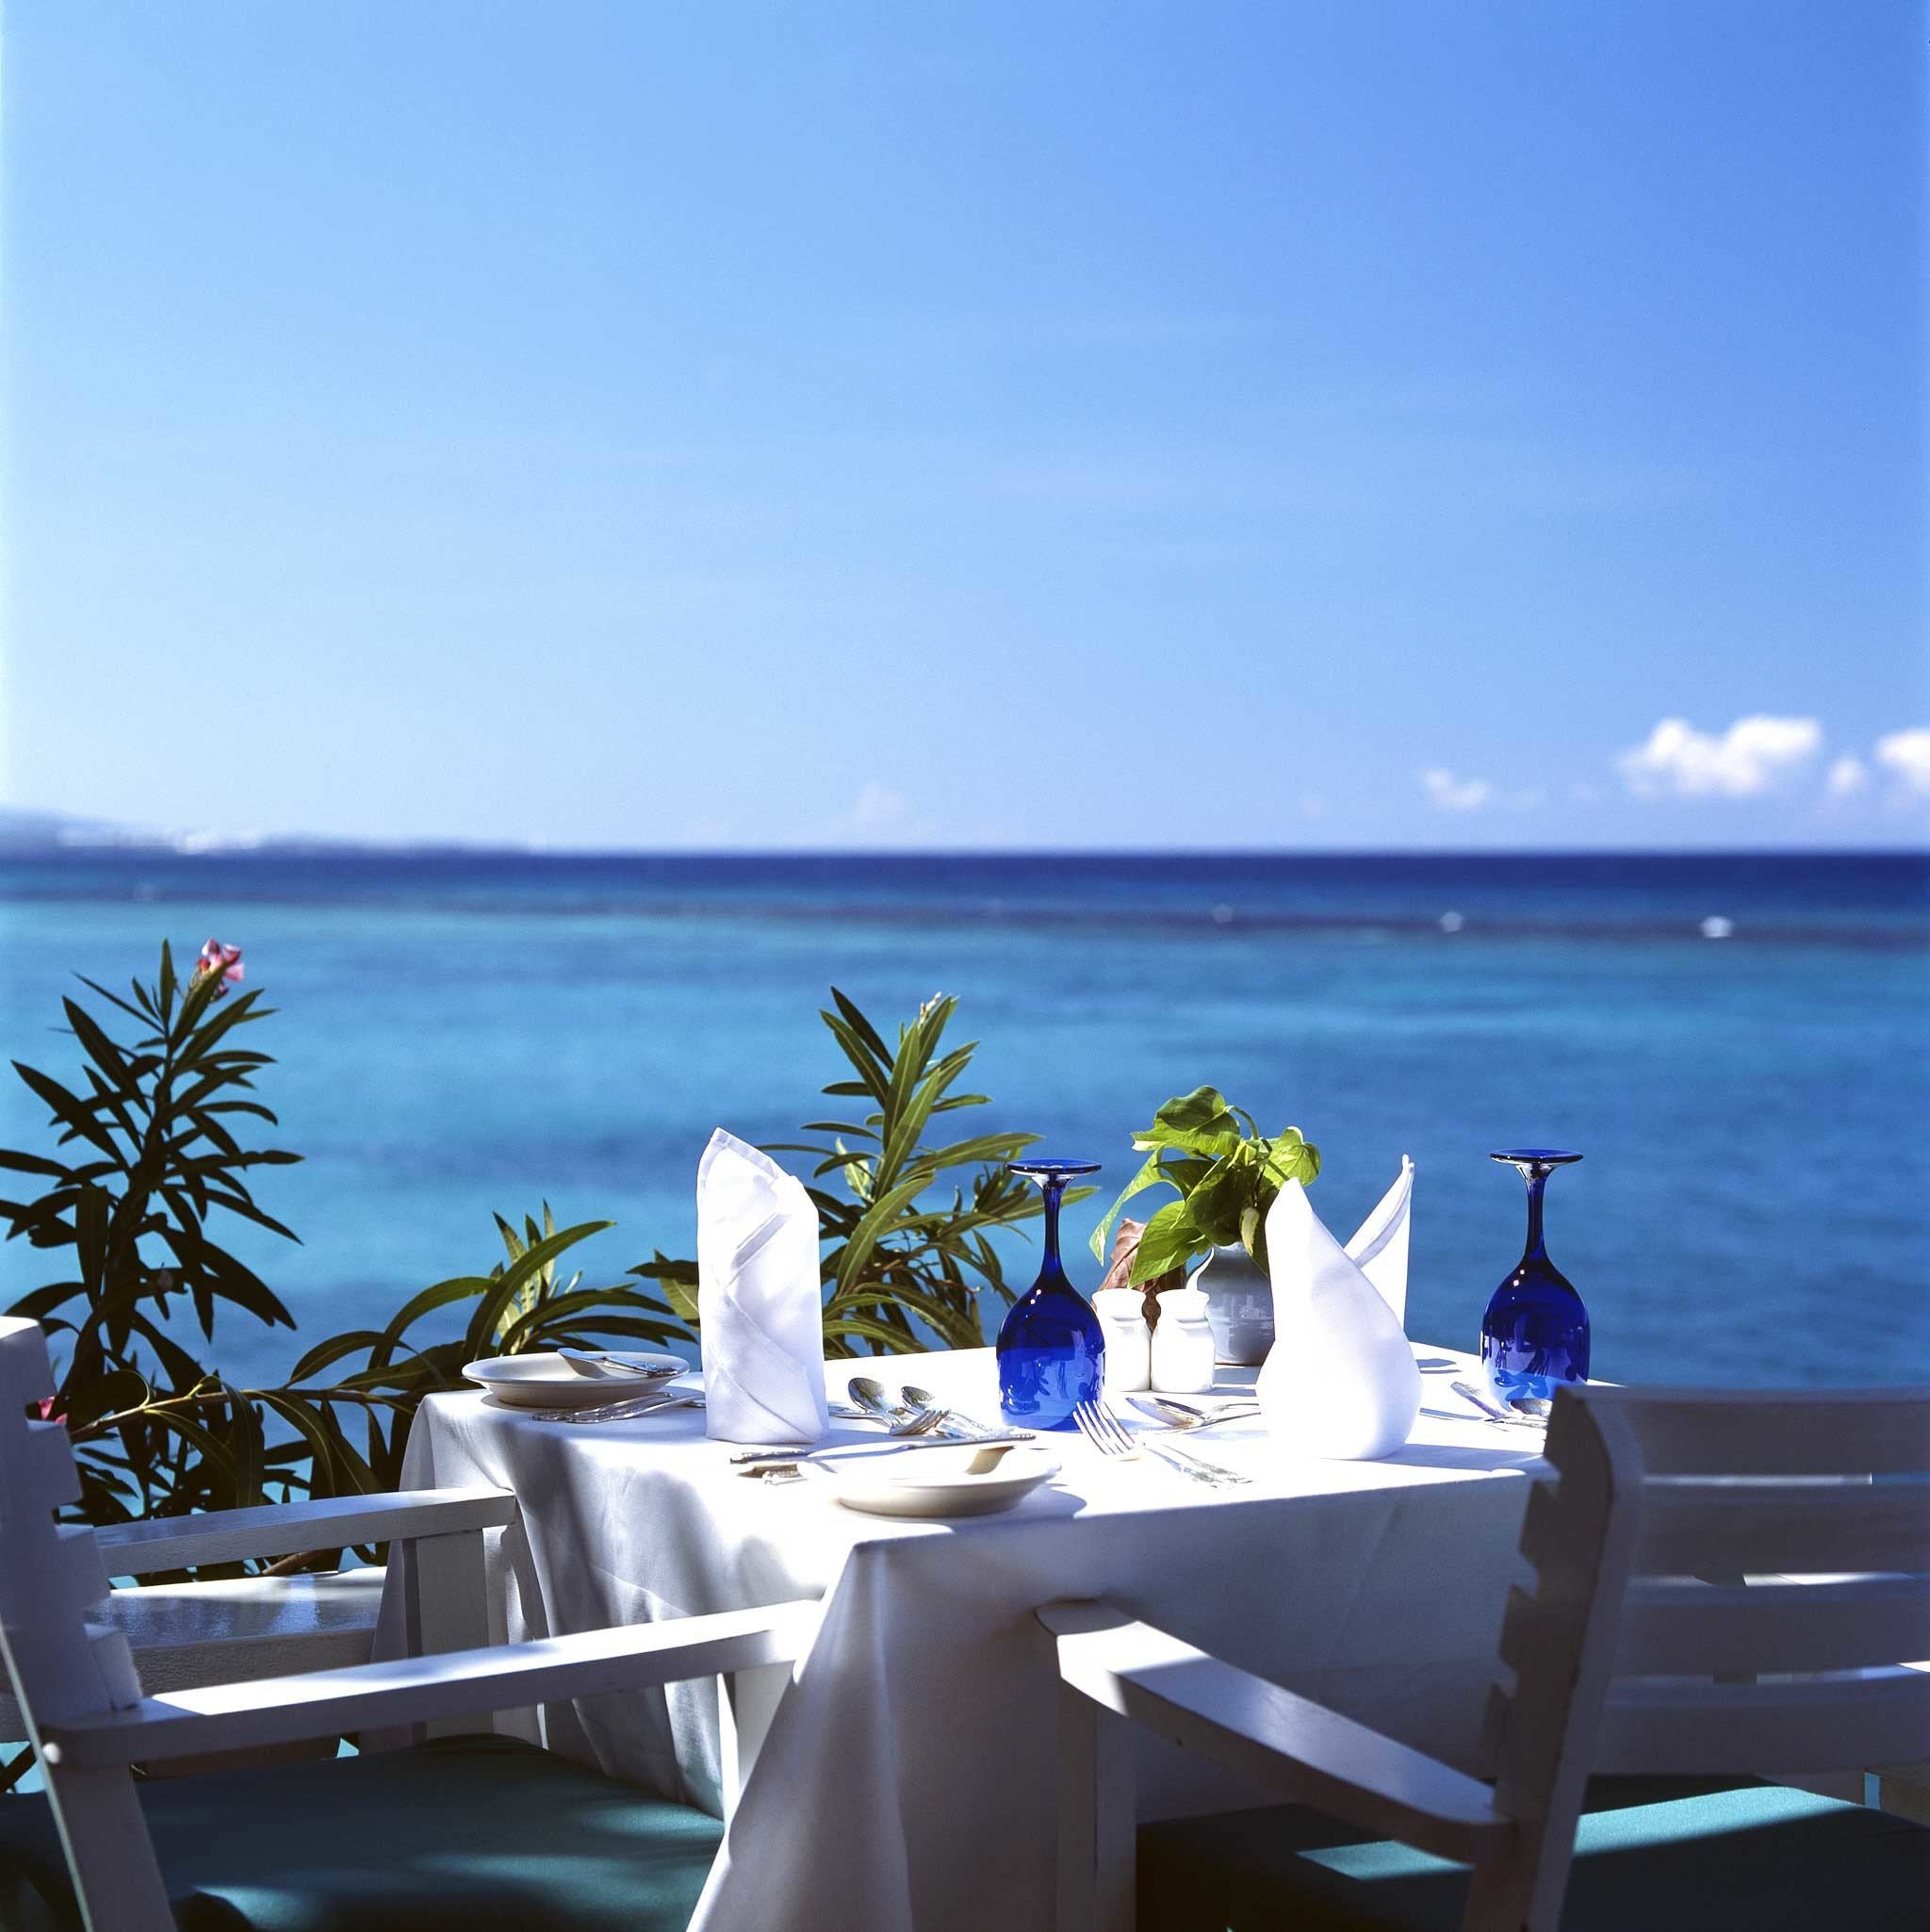 Dining Drink Eat Luxury Ocean Romantic Waterfront water sky caribbean swimming pool Beach Sea Resort overlooking Villa shore Island